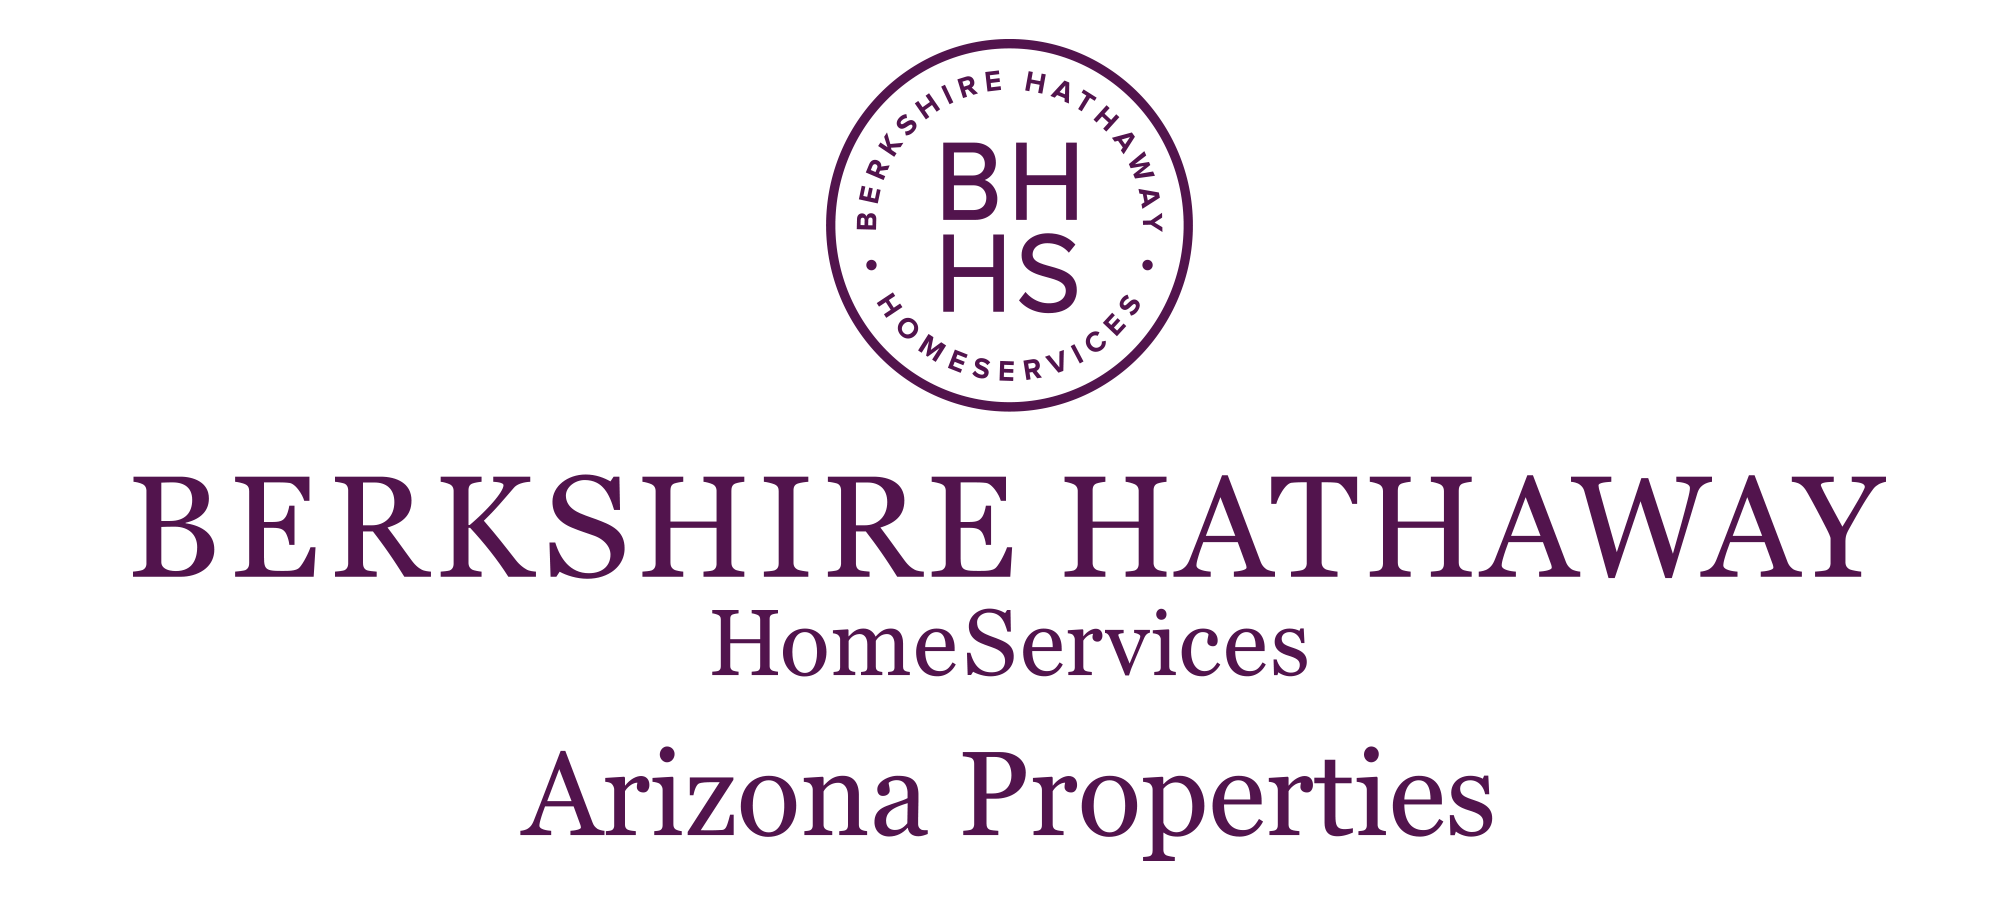 bray properties team at berkshire hathaway home services